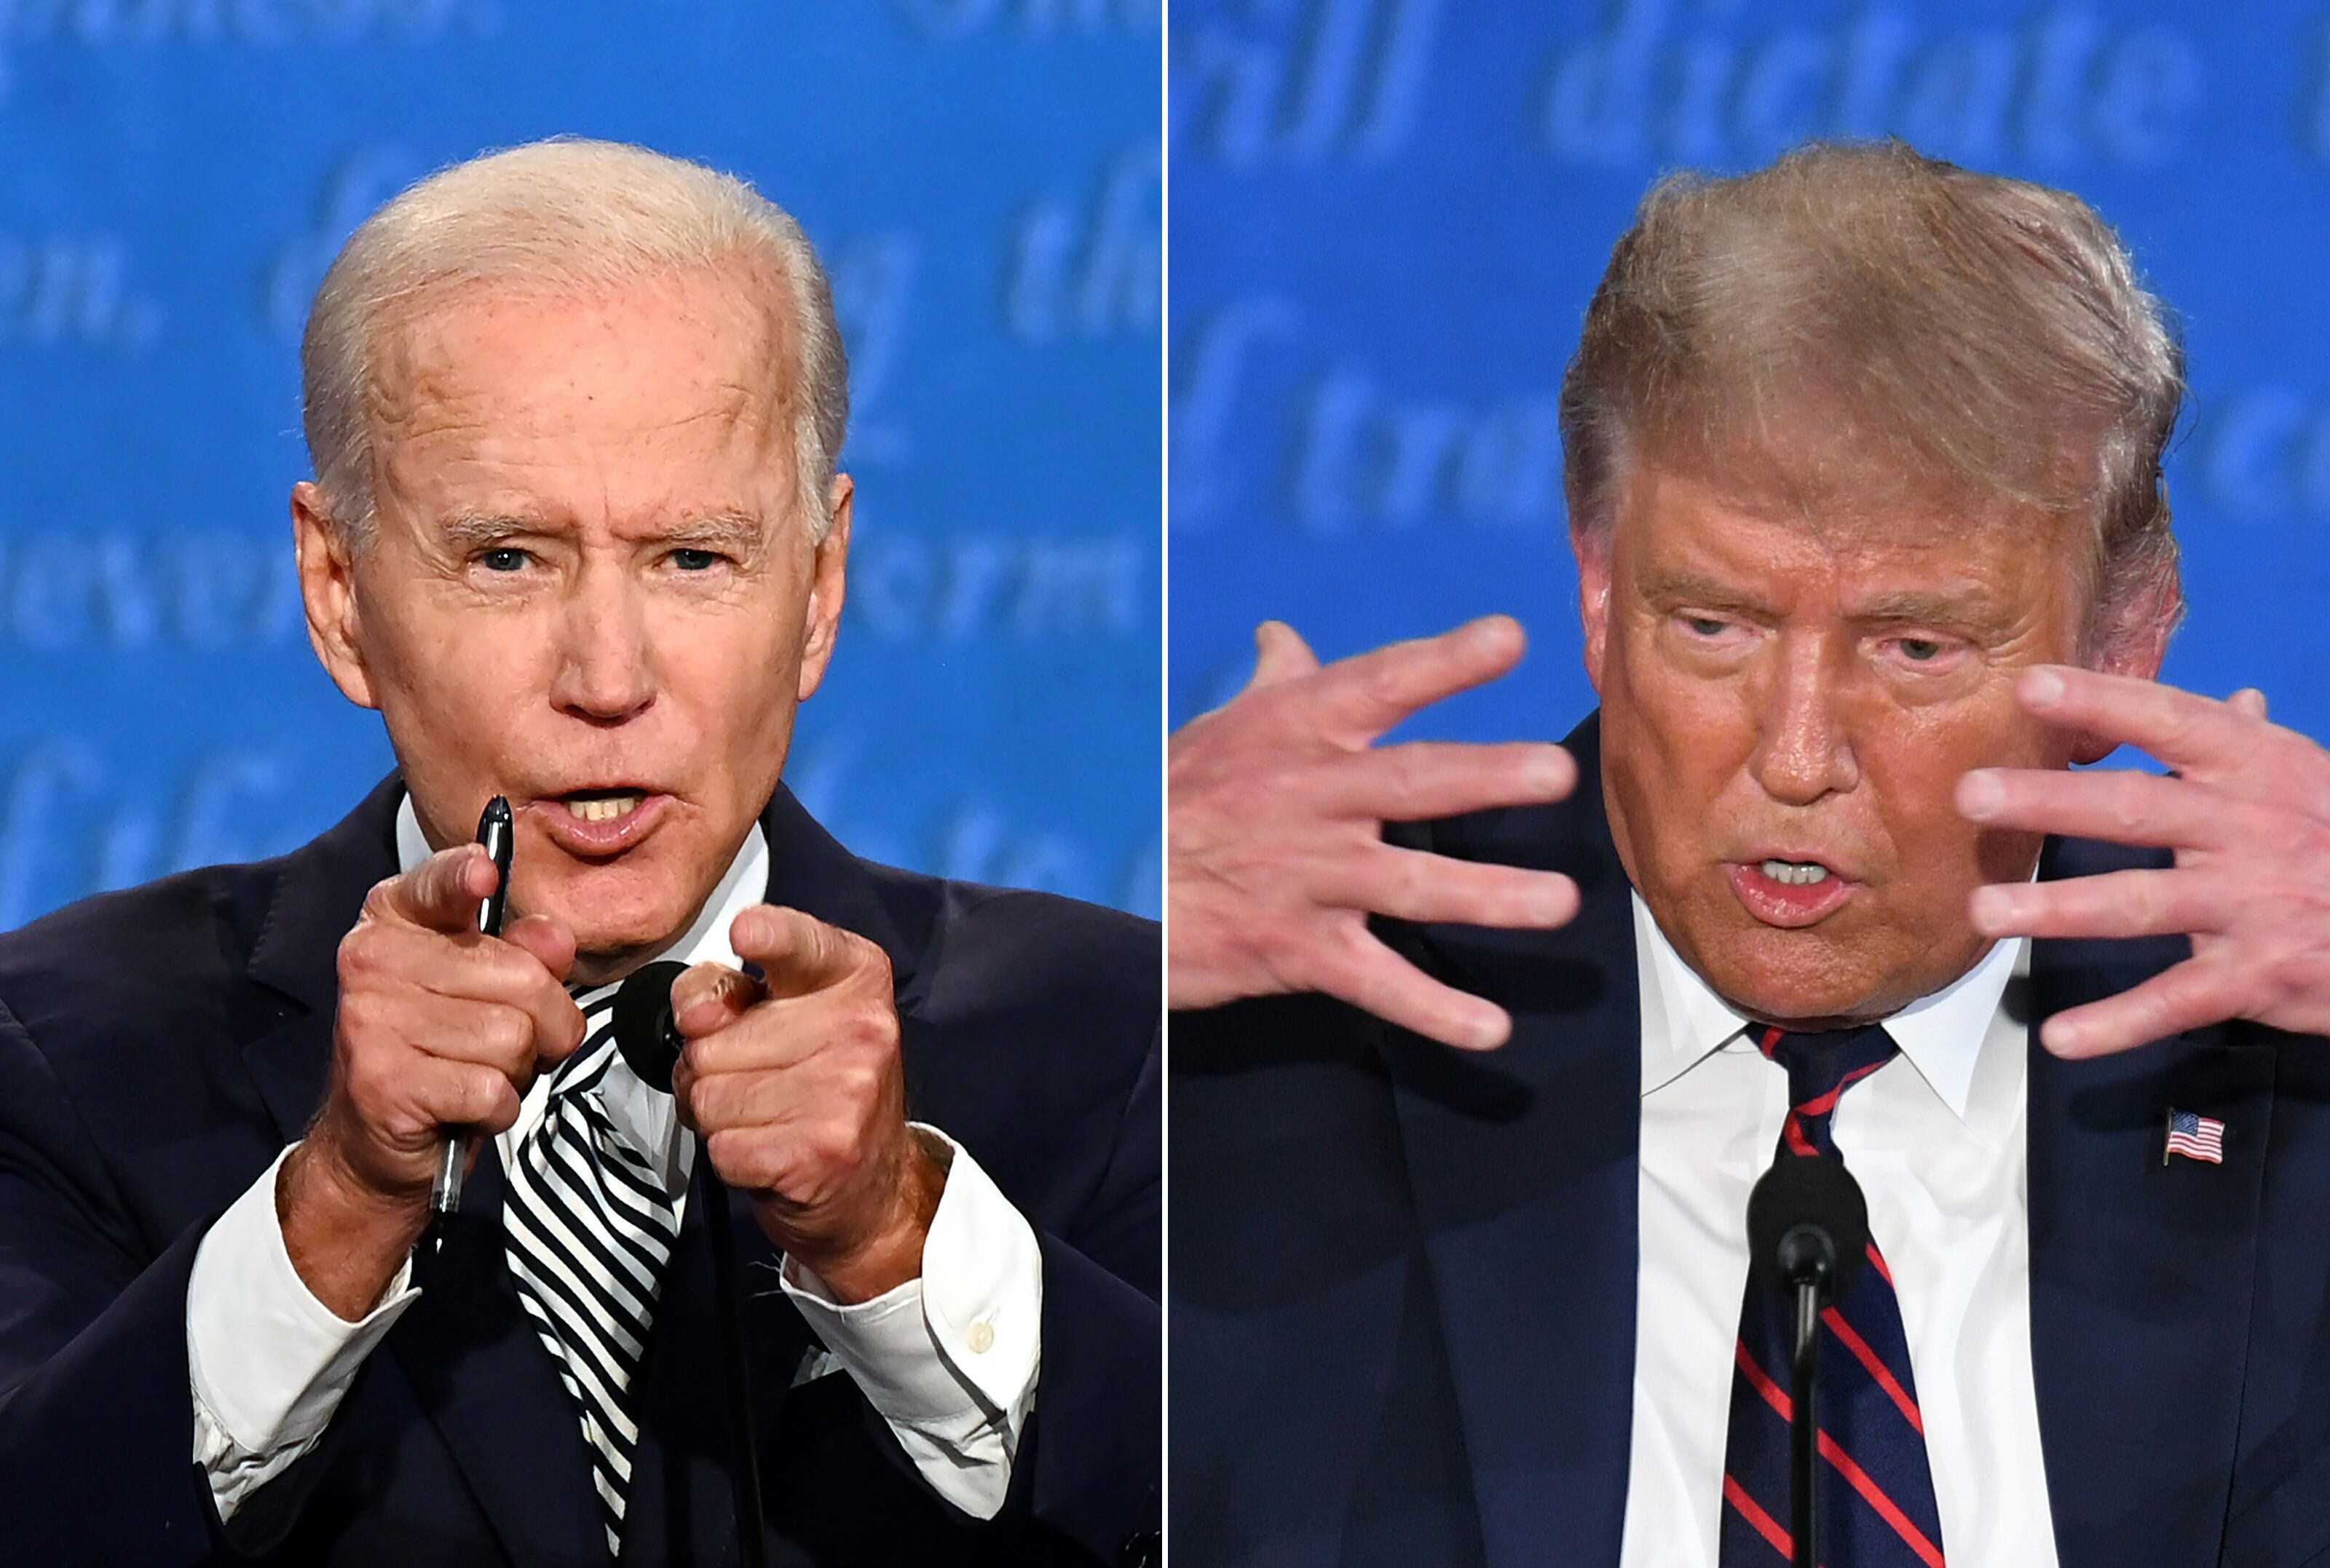 Former Vice President Joe Biden (left) and President Donald Trump meet at the first2020 presidential debate Tuesday at